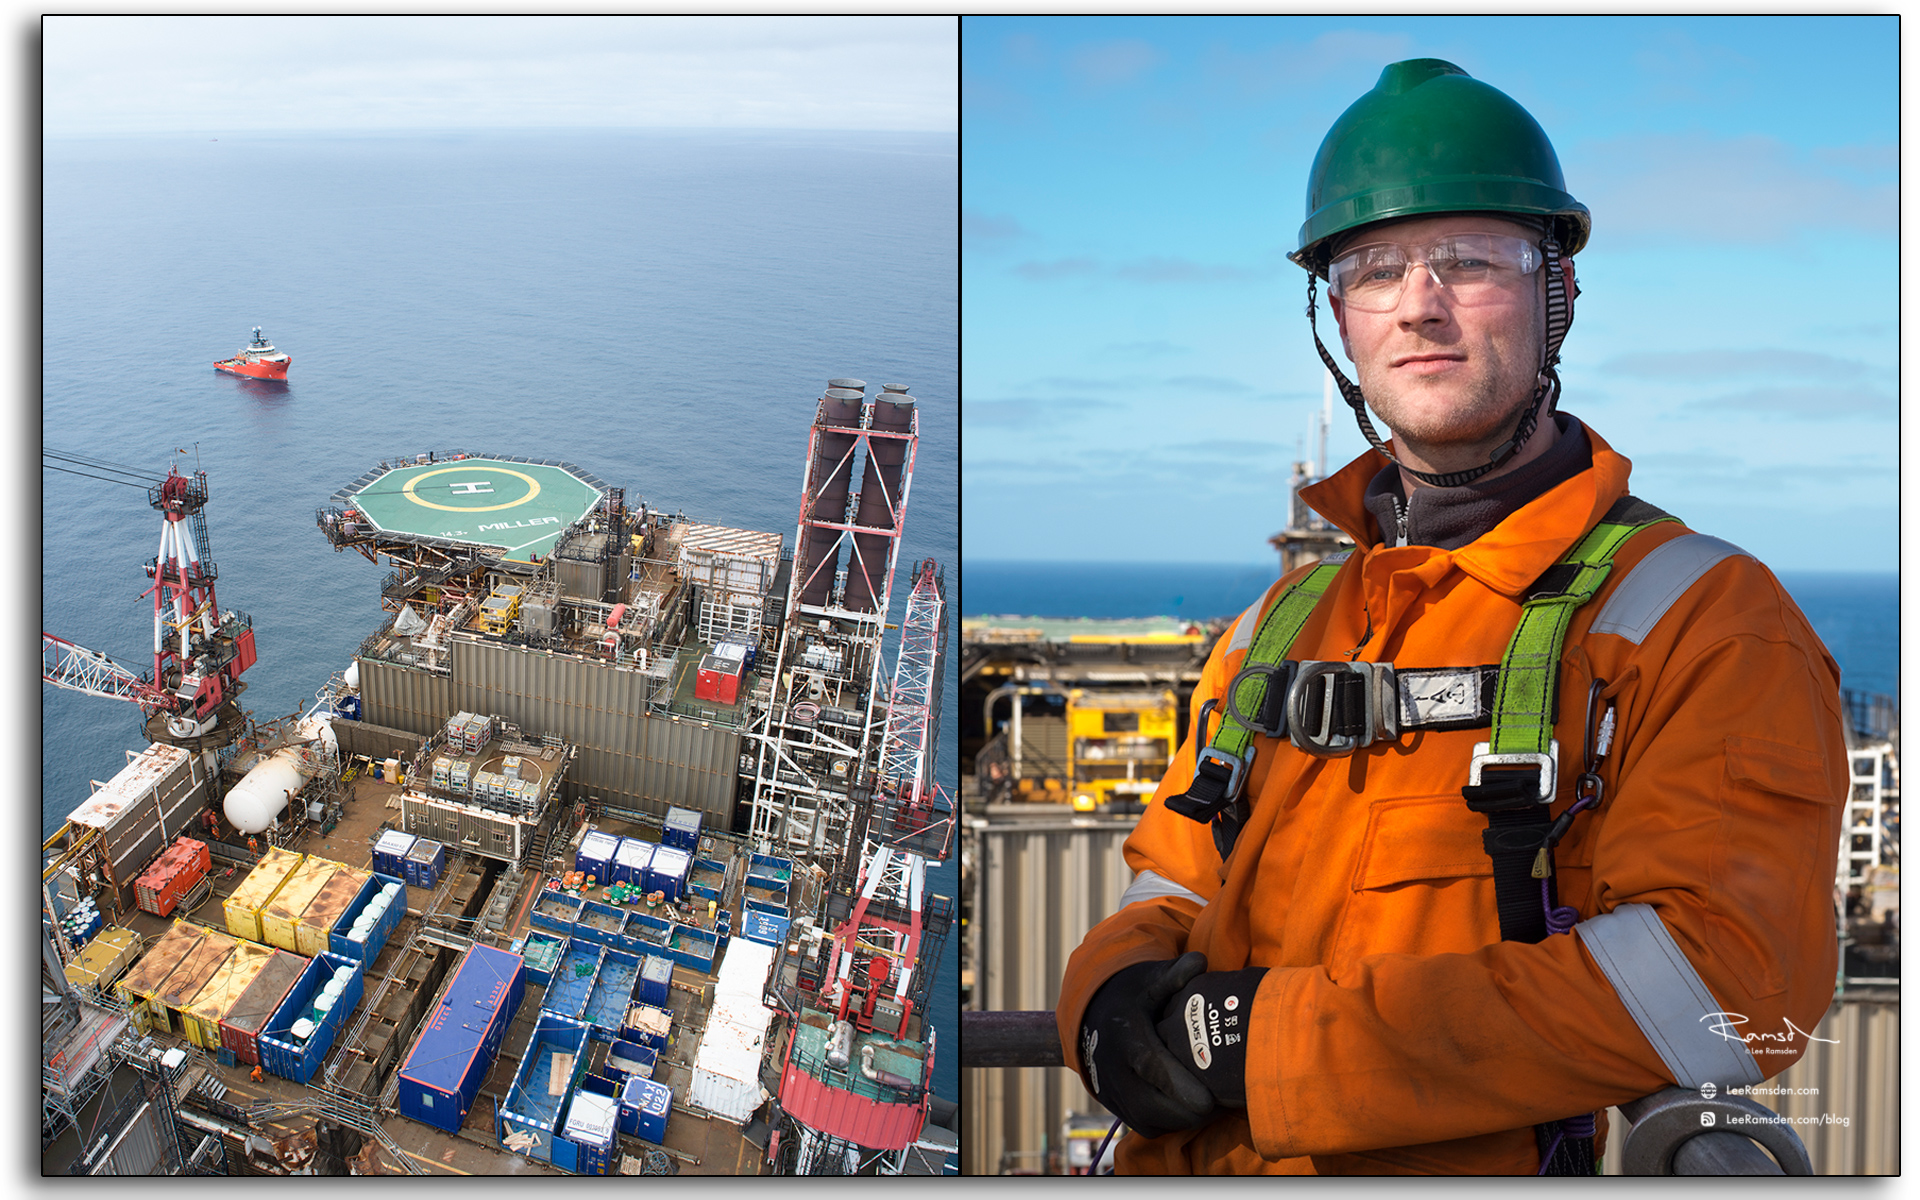 blog, Scaffodler, Mark Wilson, Marc Wilson, Brand energy, ACN, oil and gas industry, portrait, portrature, selfie, BP Miller, oil and gas rig, Petrofac, BP